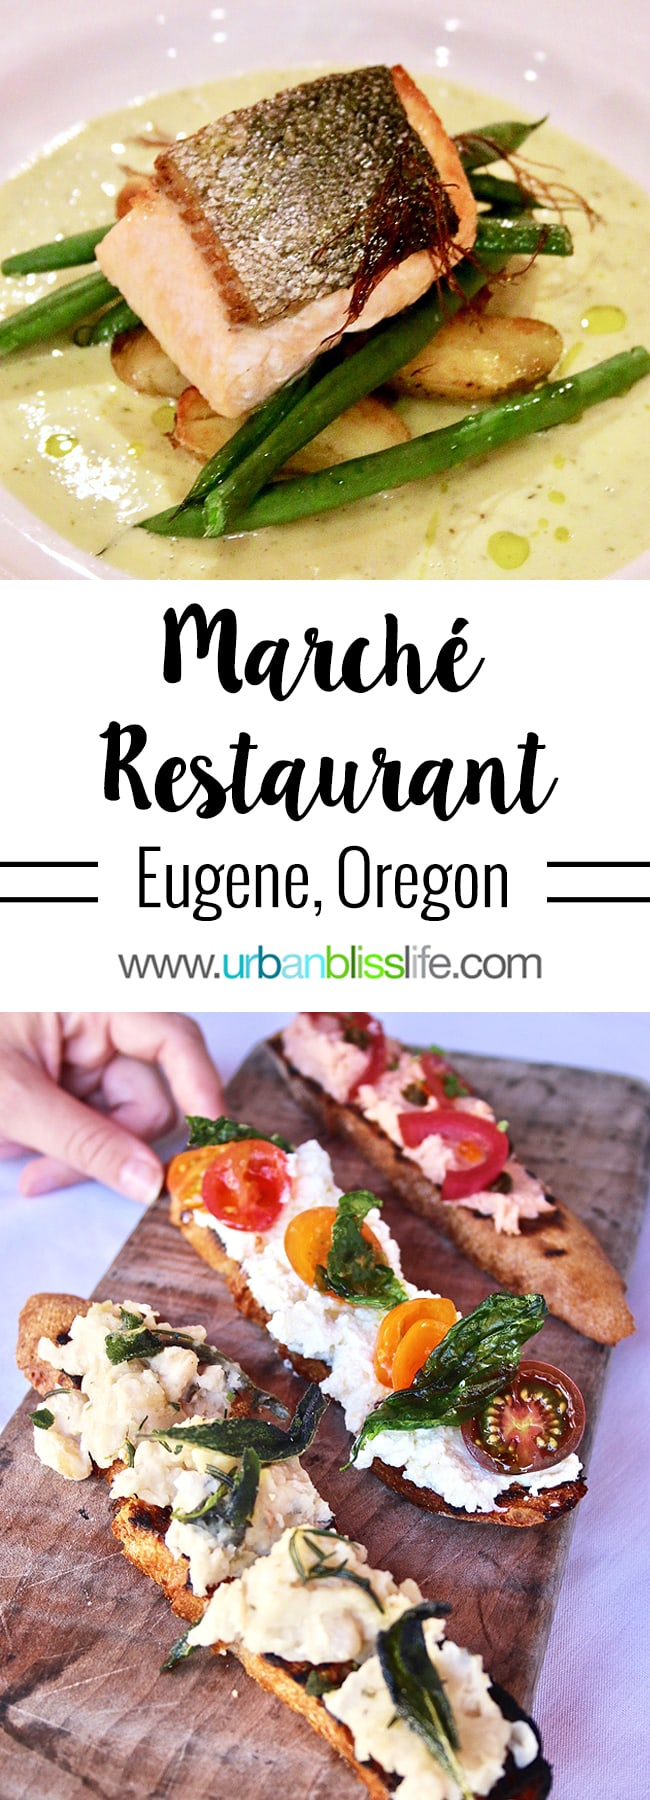 French-inspired Pacific Northwest cuisine at Marche restaurant Eugene Oregon, restaurant review on UrbanBlissLife.com